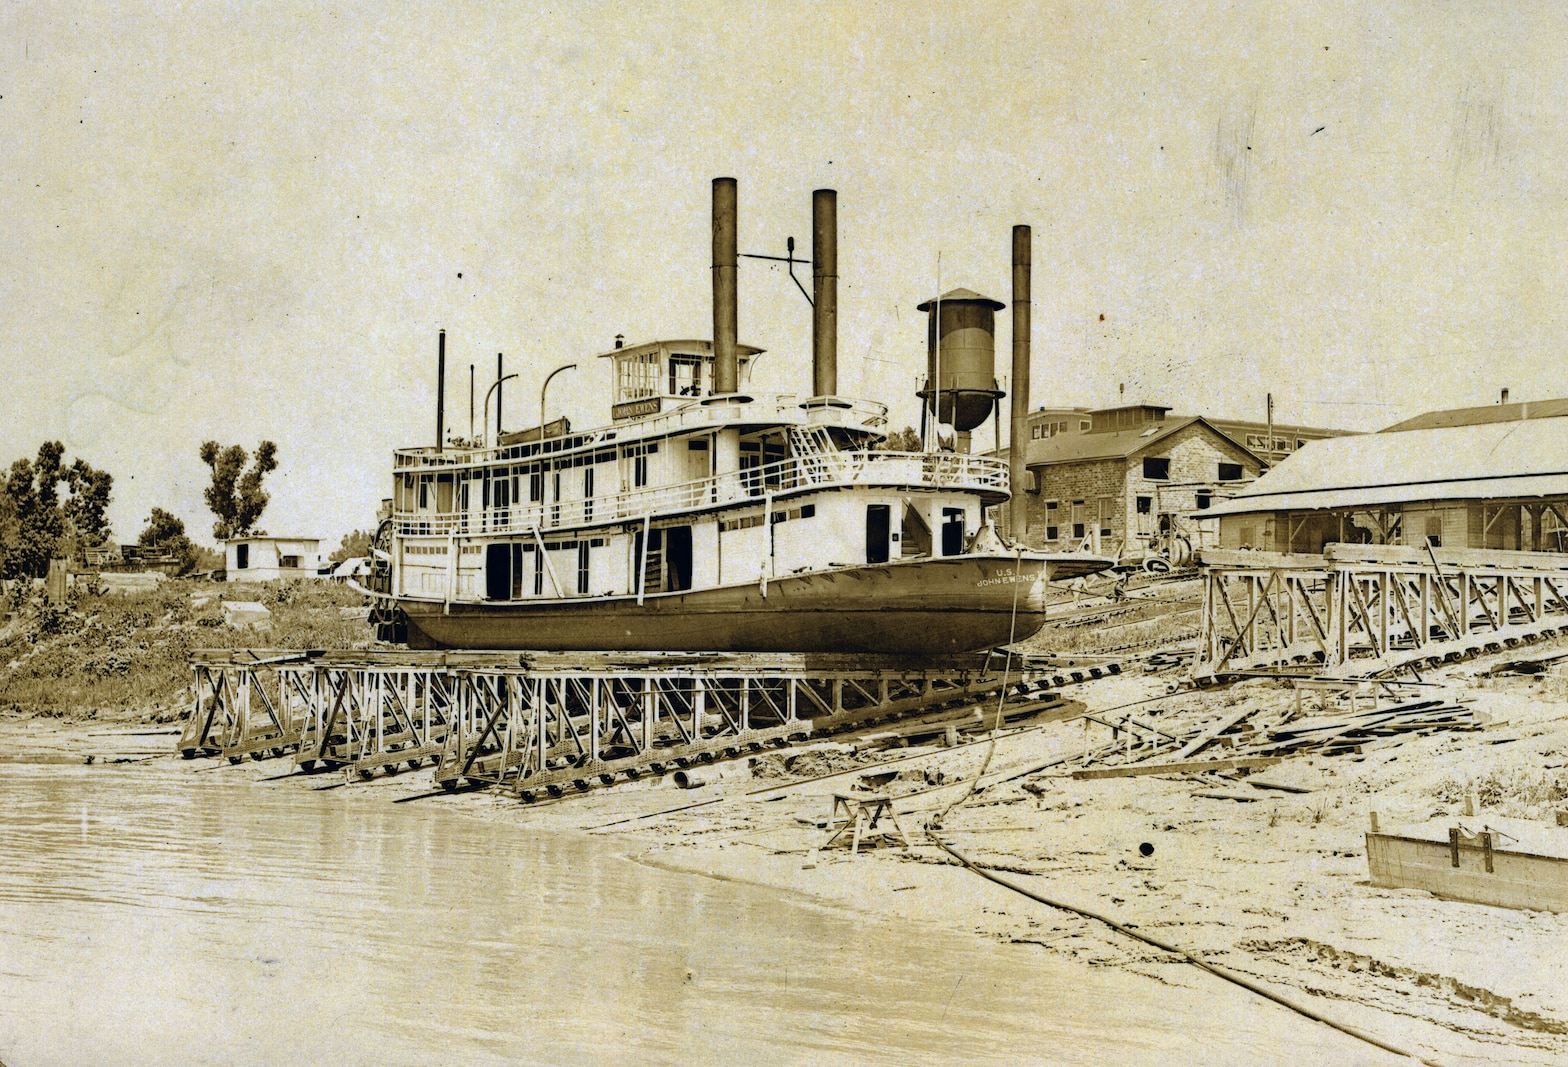 steamer on stilts on river shore